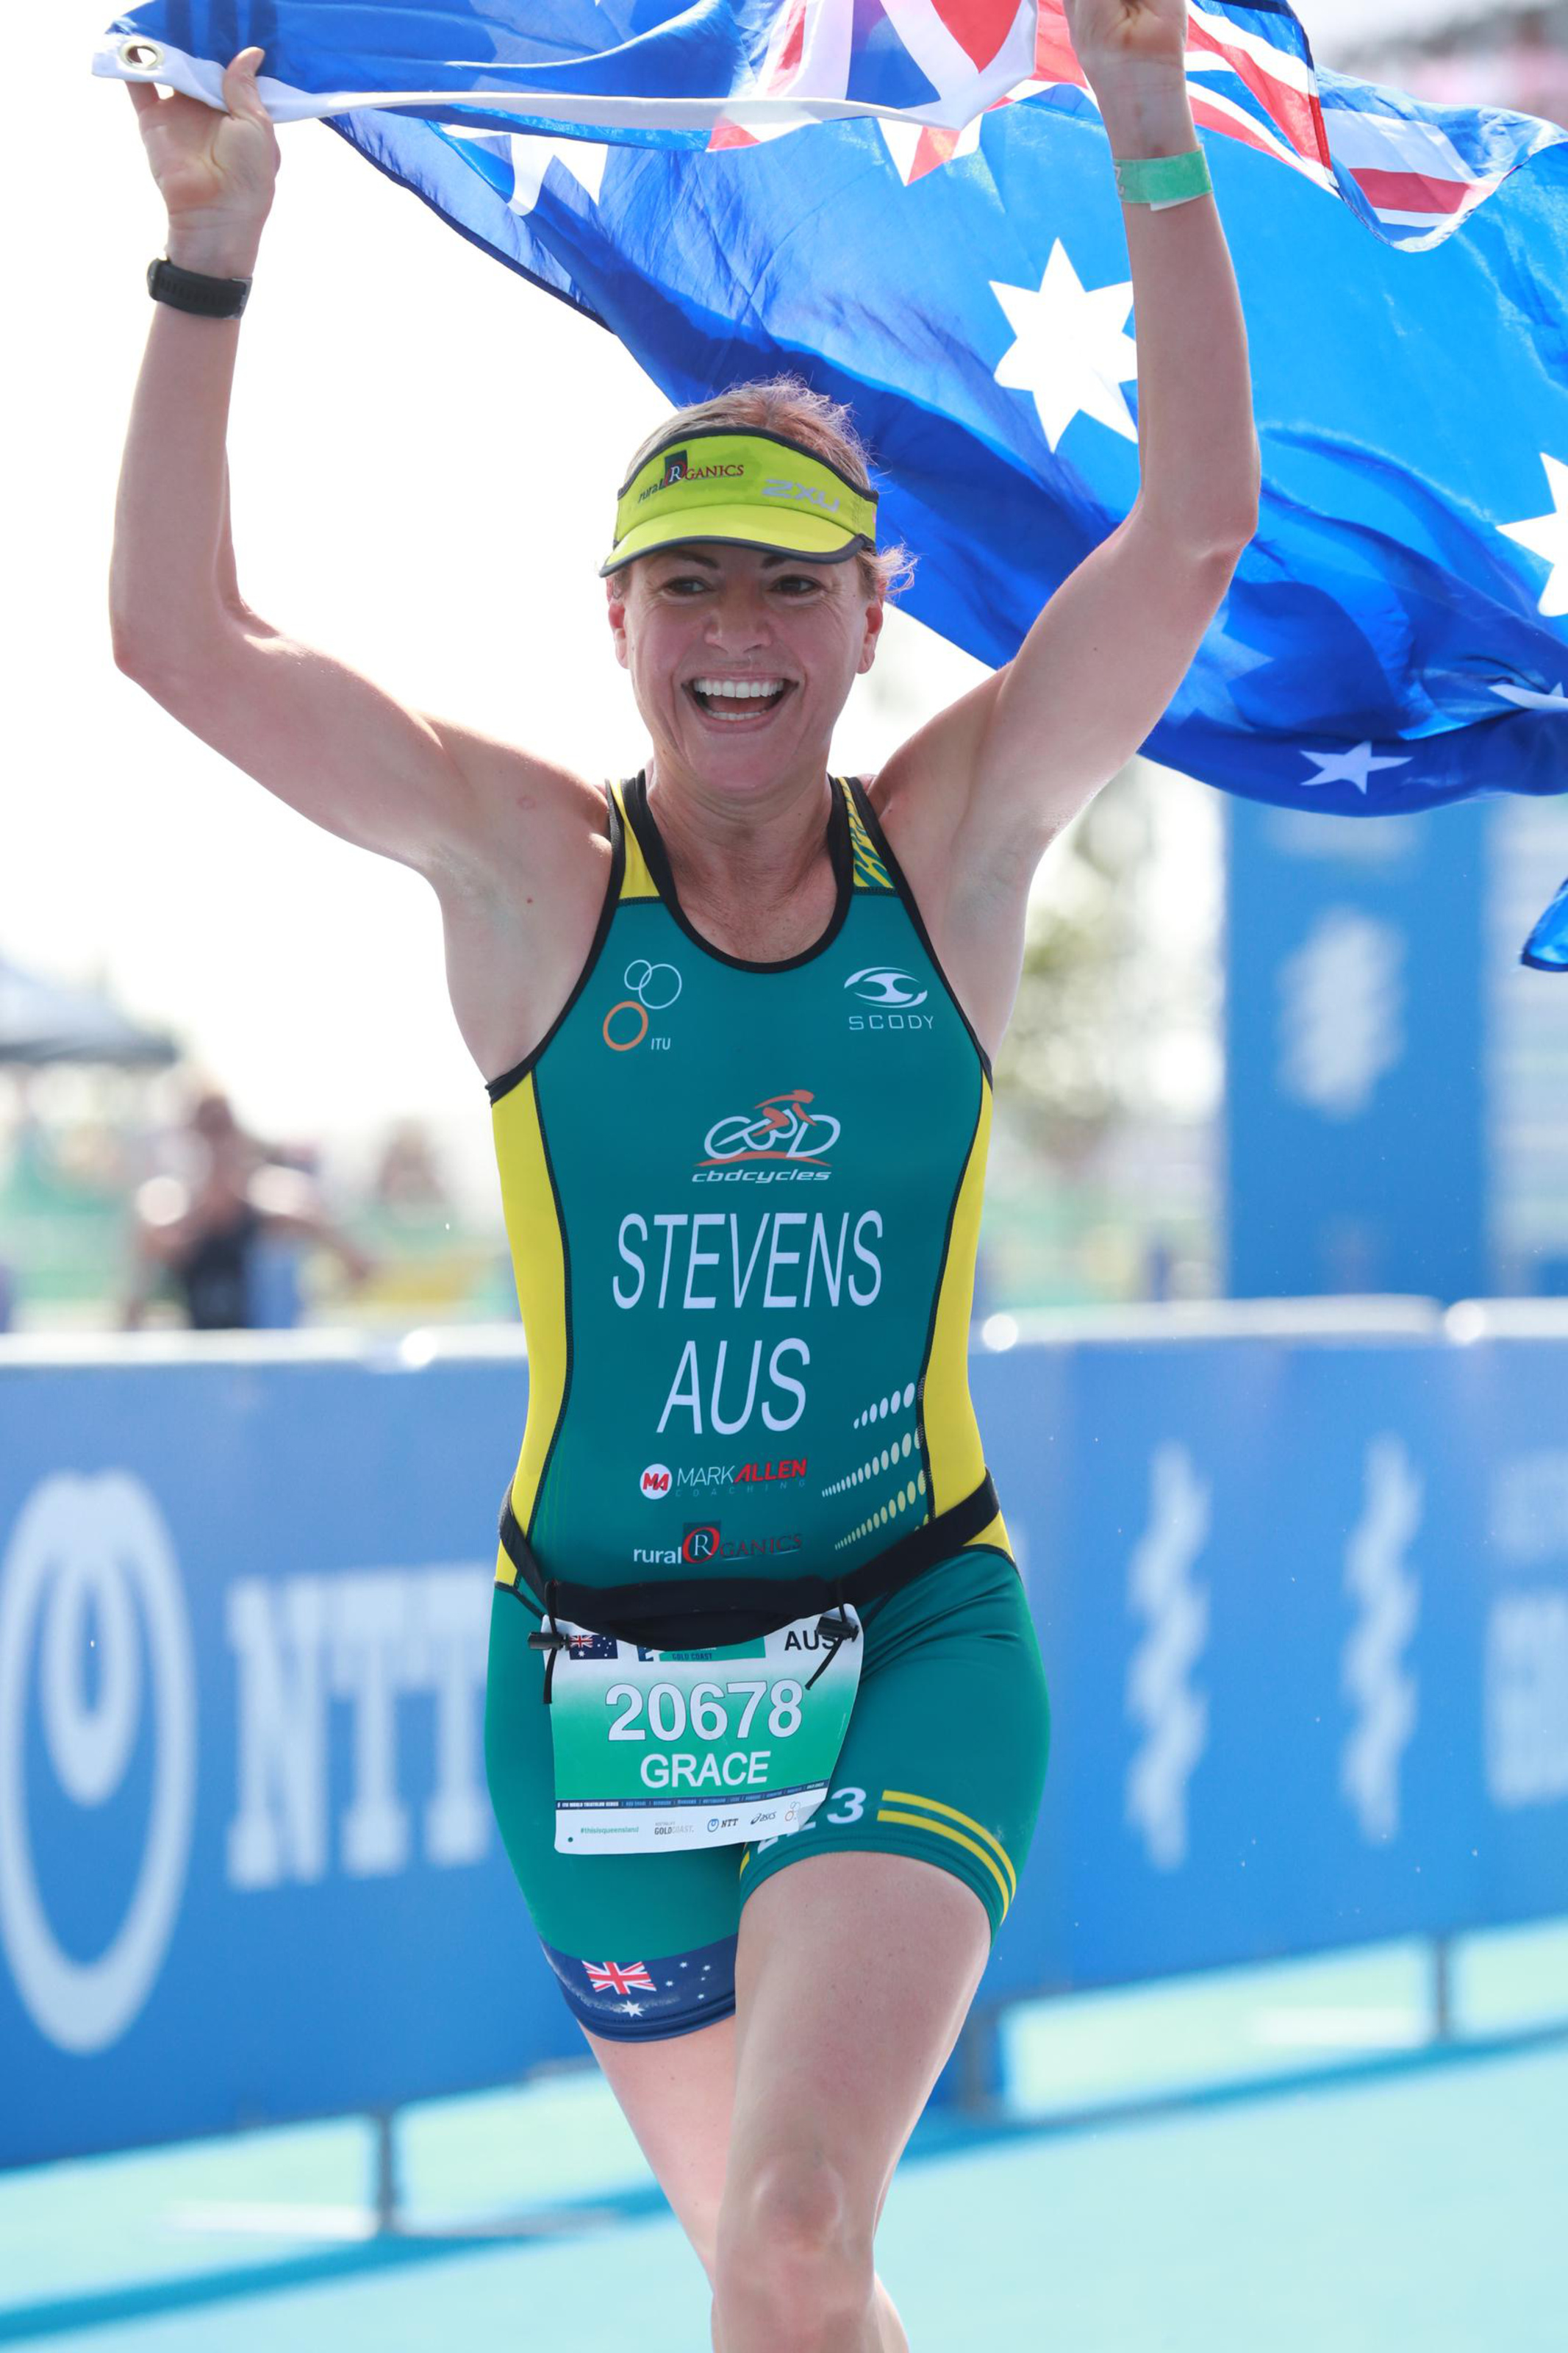 Grace racing for Australia at ITU Age-group Triathlon World Champs 2018